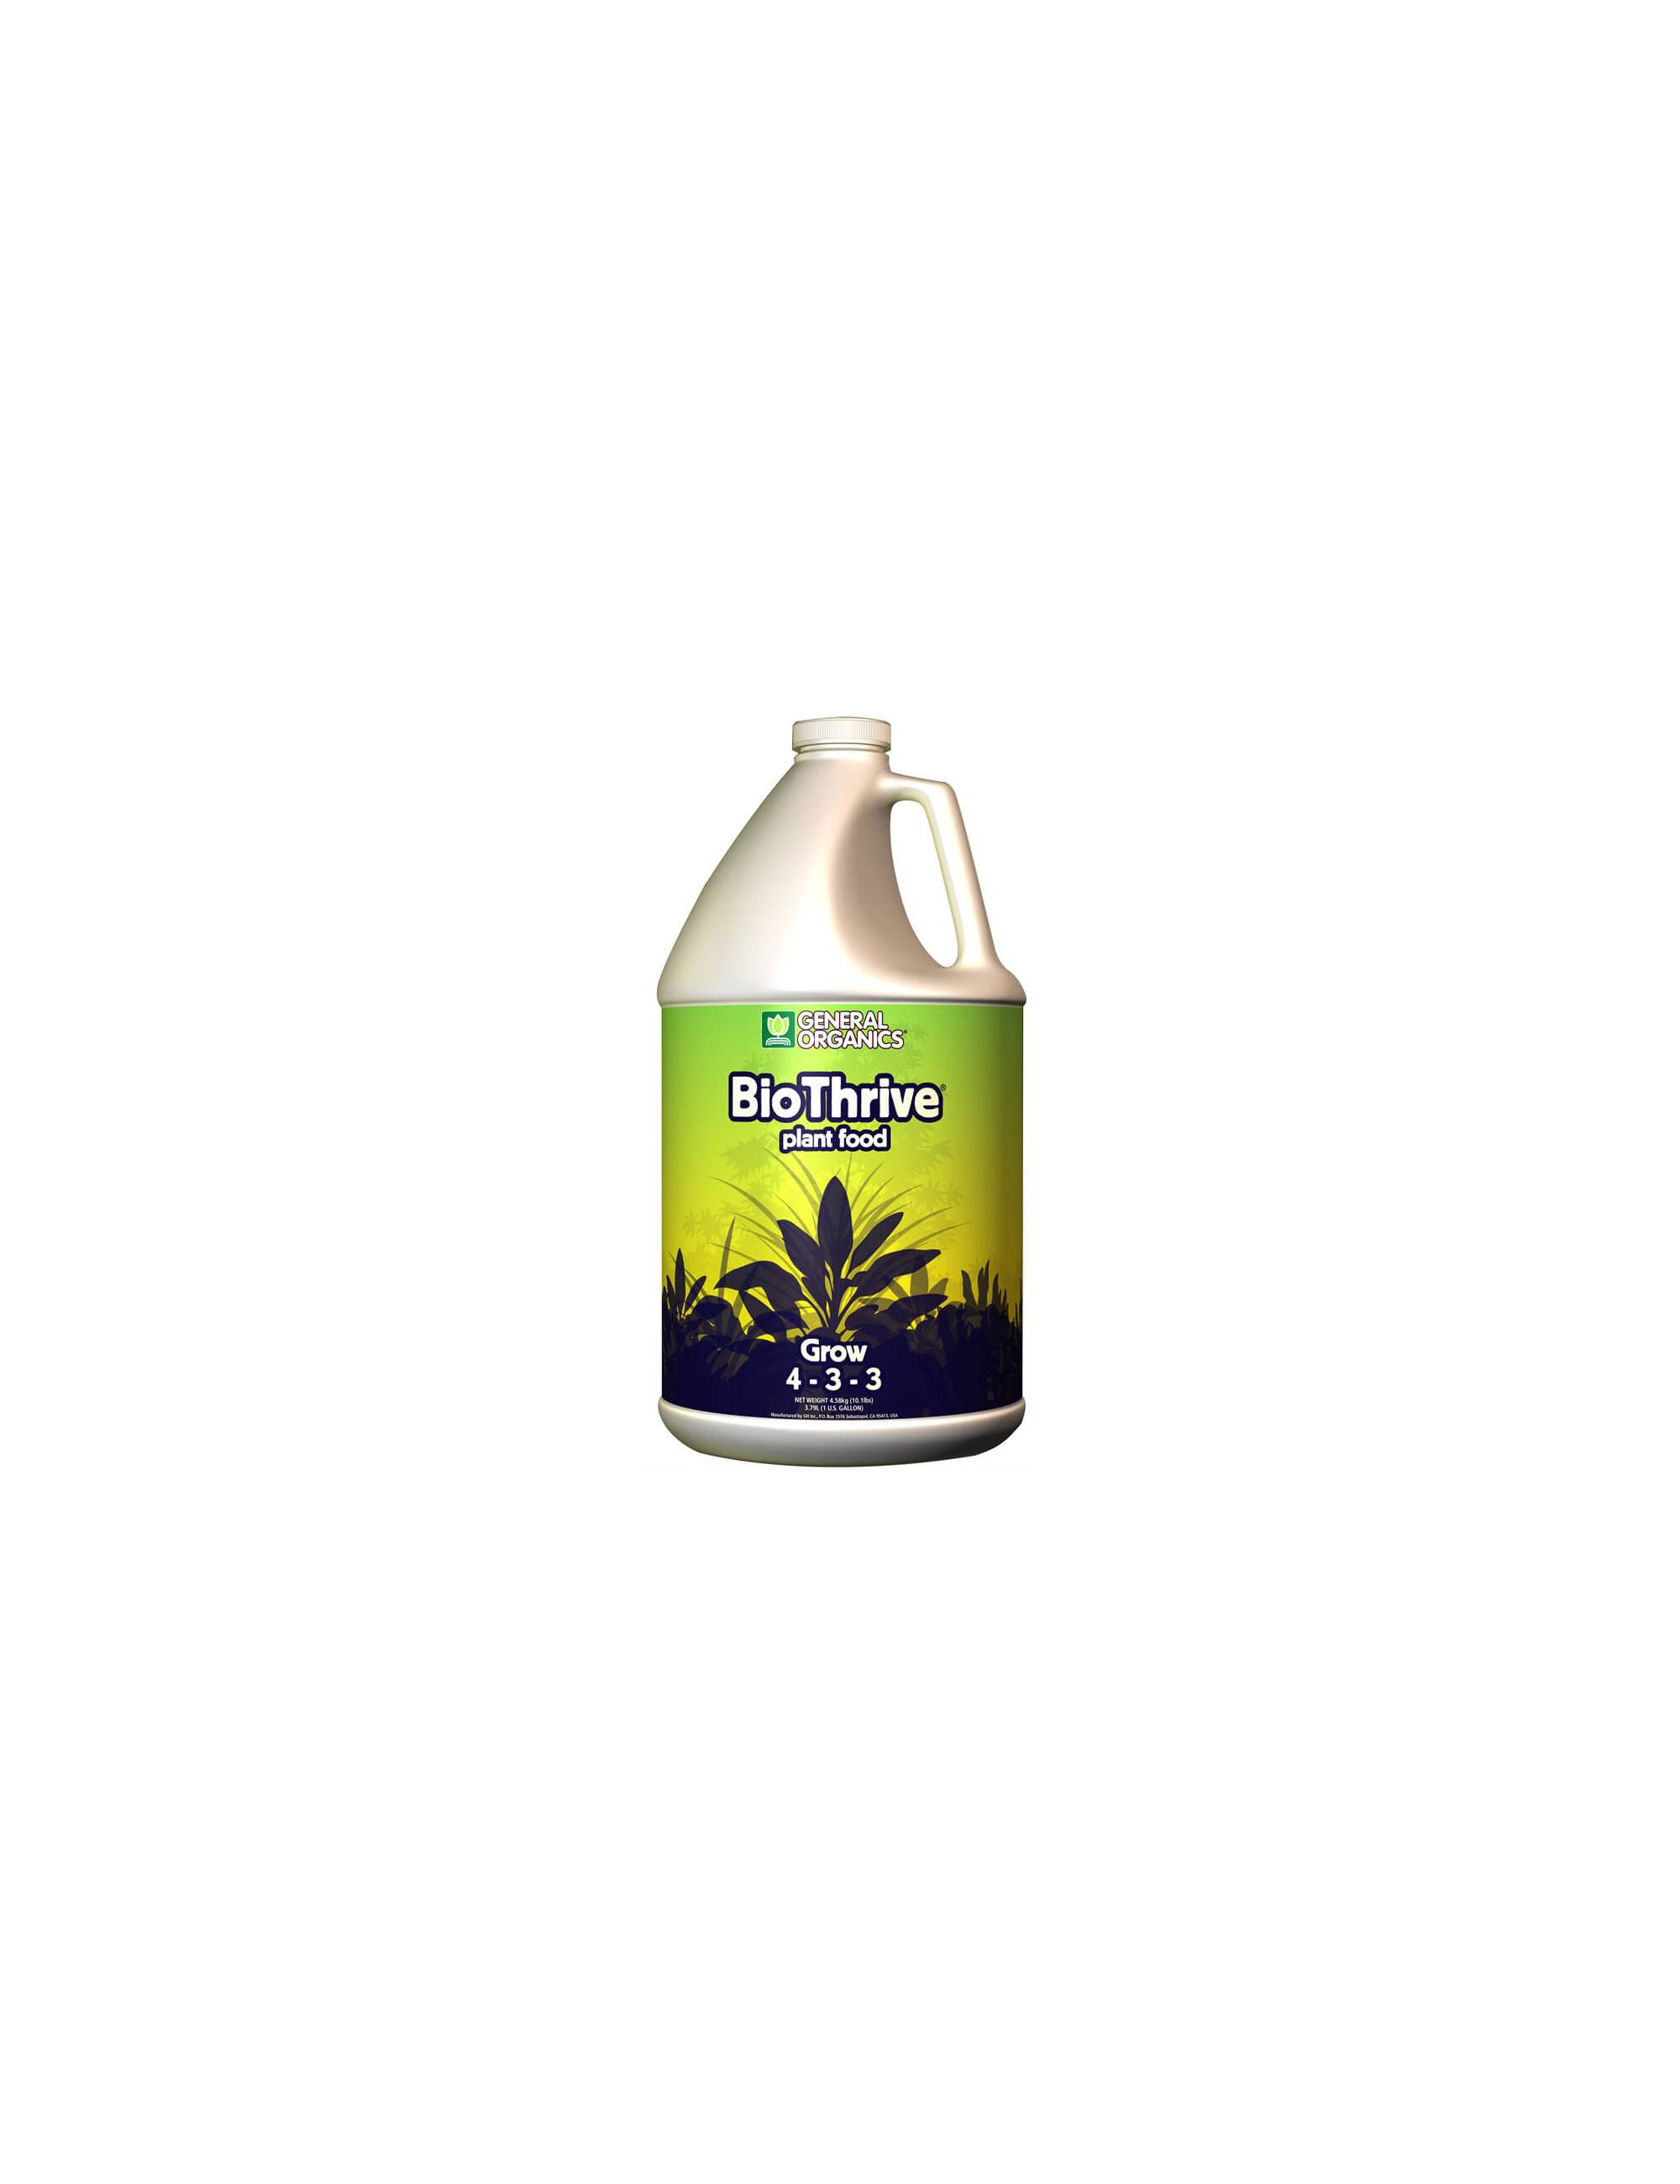 BIOTHRIVE GROW 1 GALLON